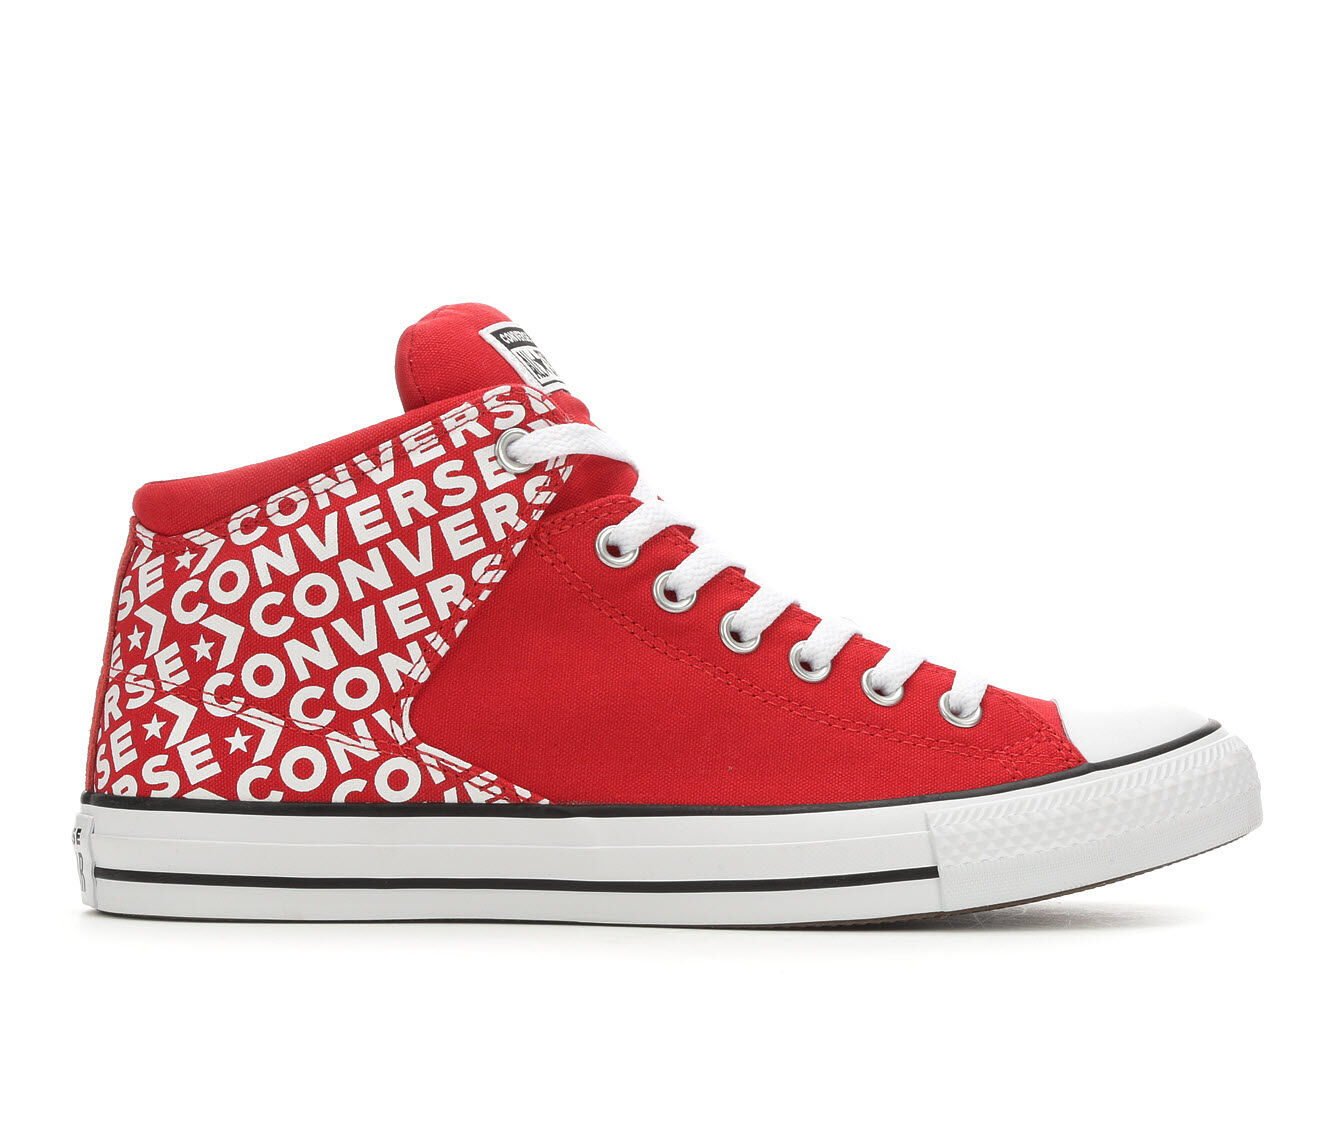 Men's Converse Chuck Taylor All Star Hi St Wordmark 2.0 High-Top Sneakers Red/Wht/Blk